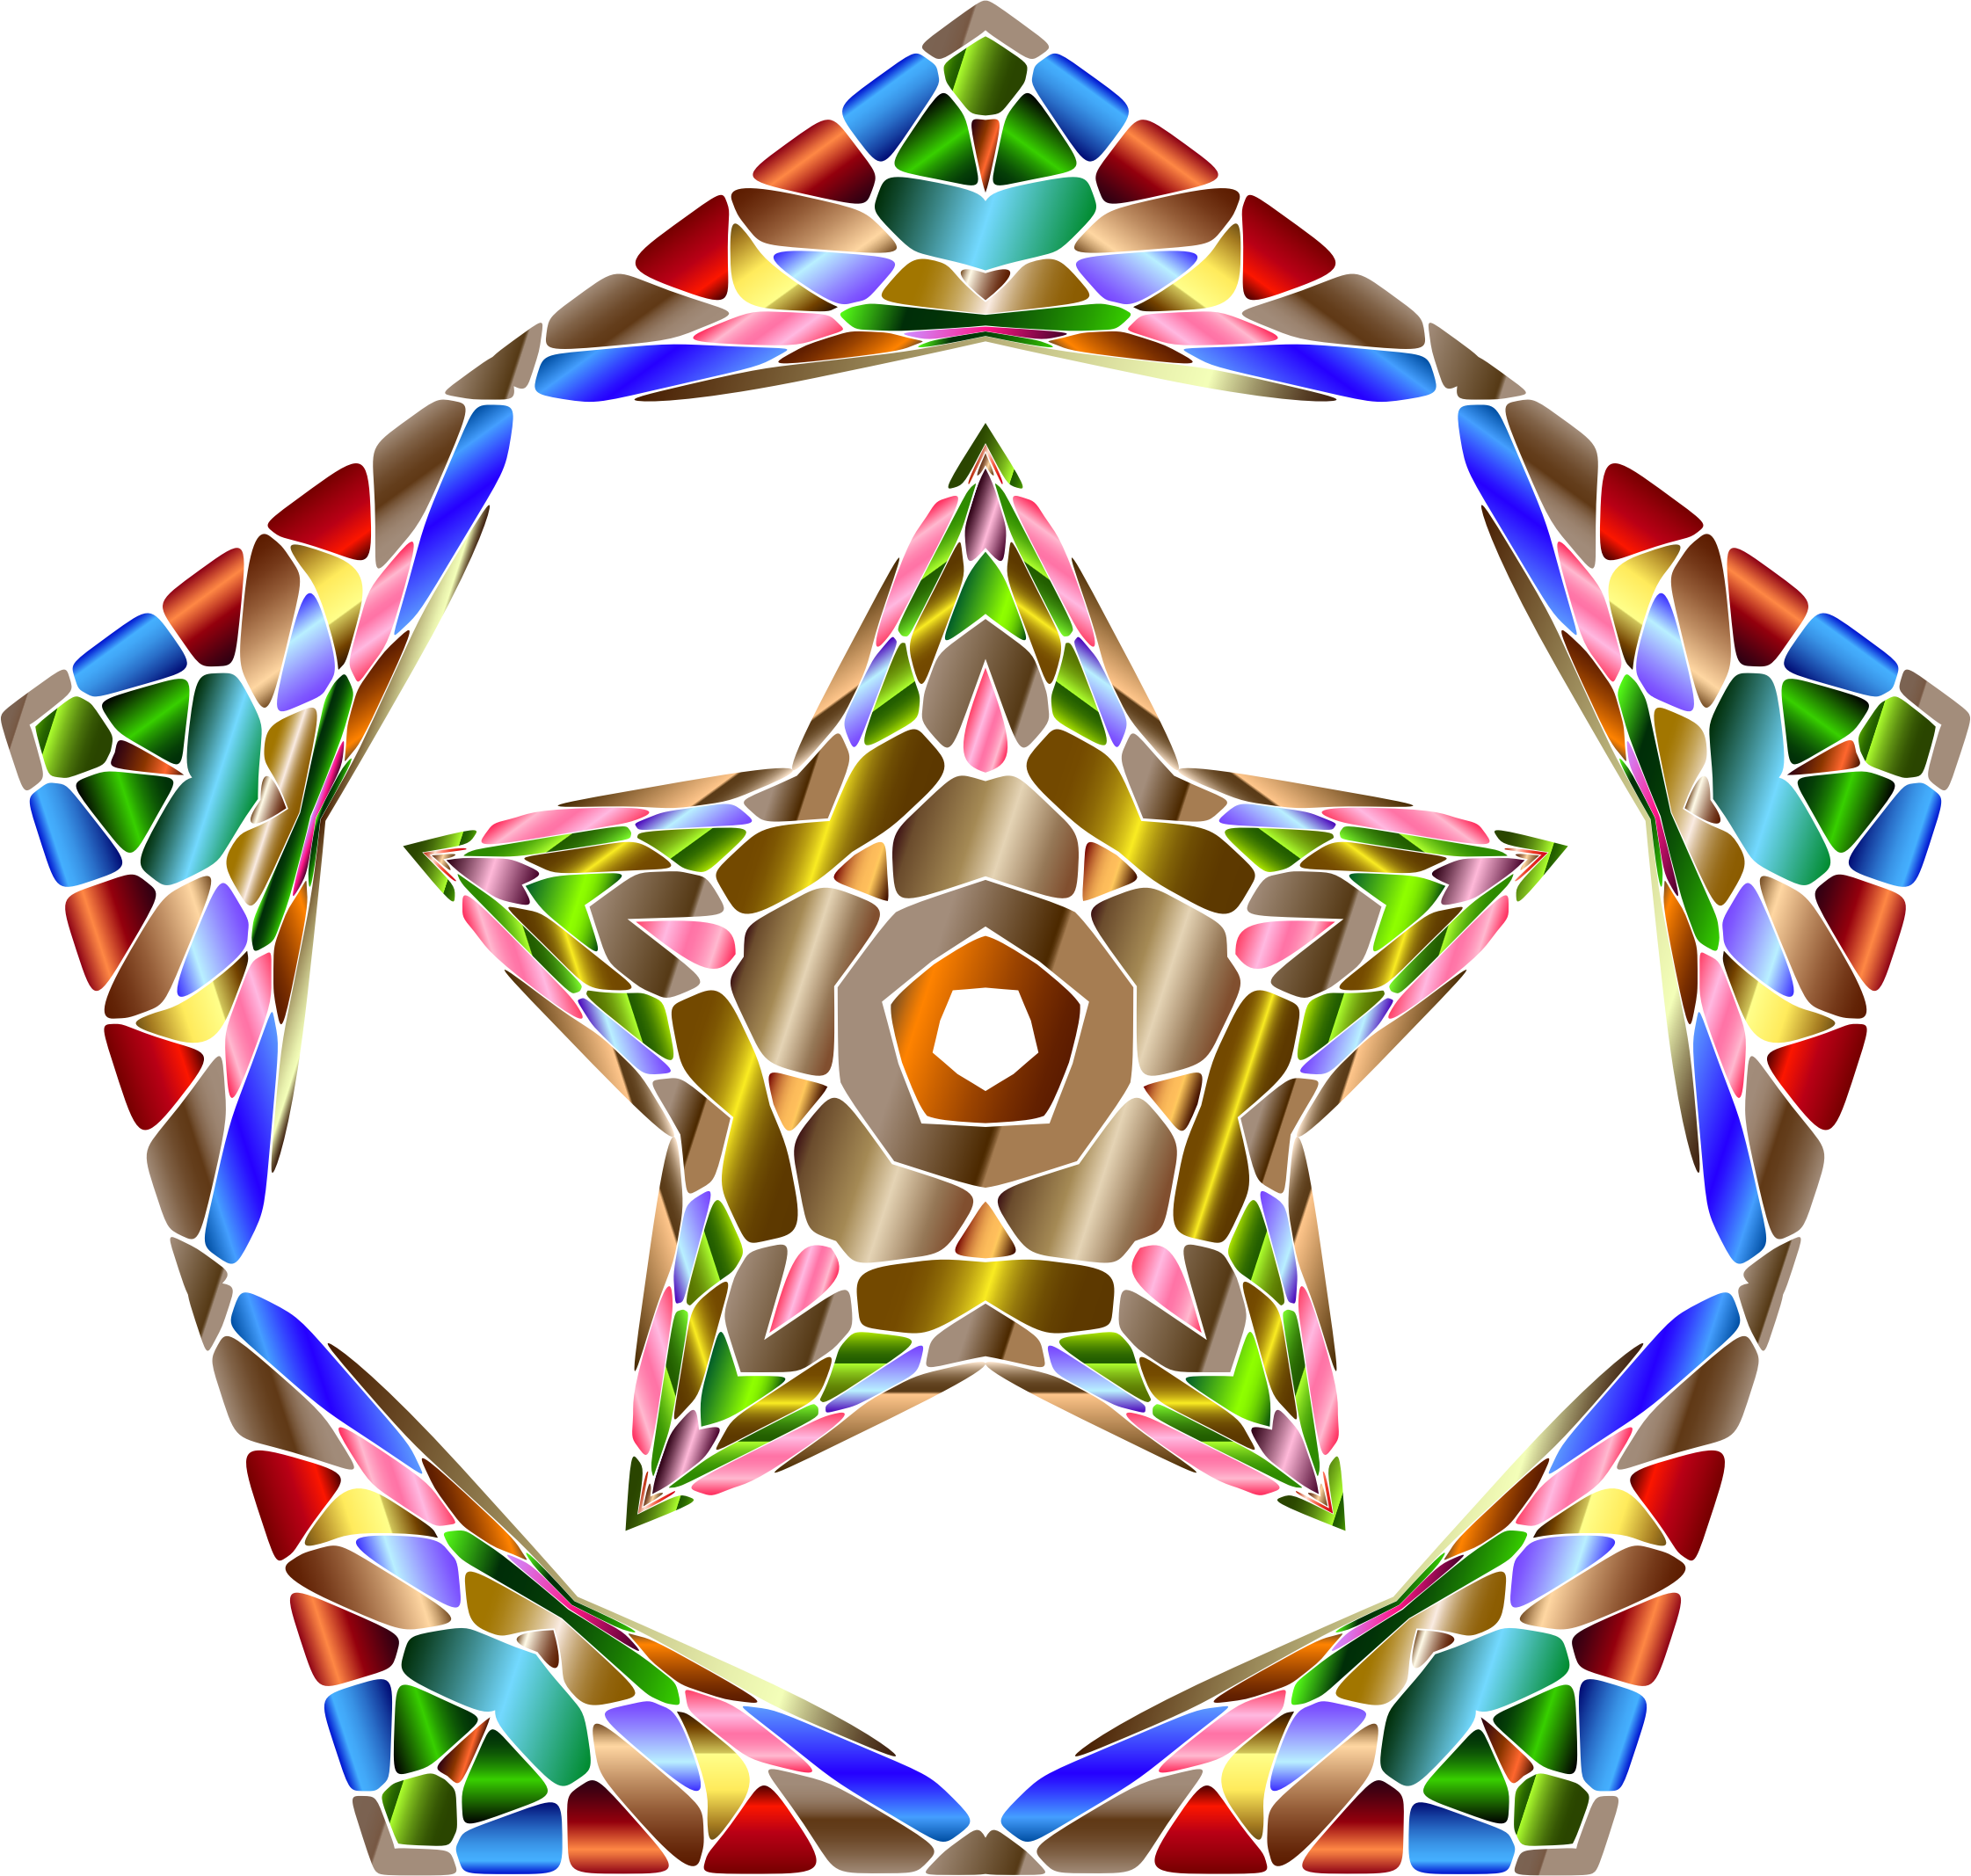 Chromatic Geometry 5 by GDJ